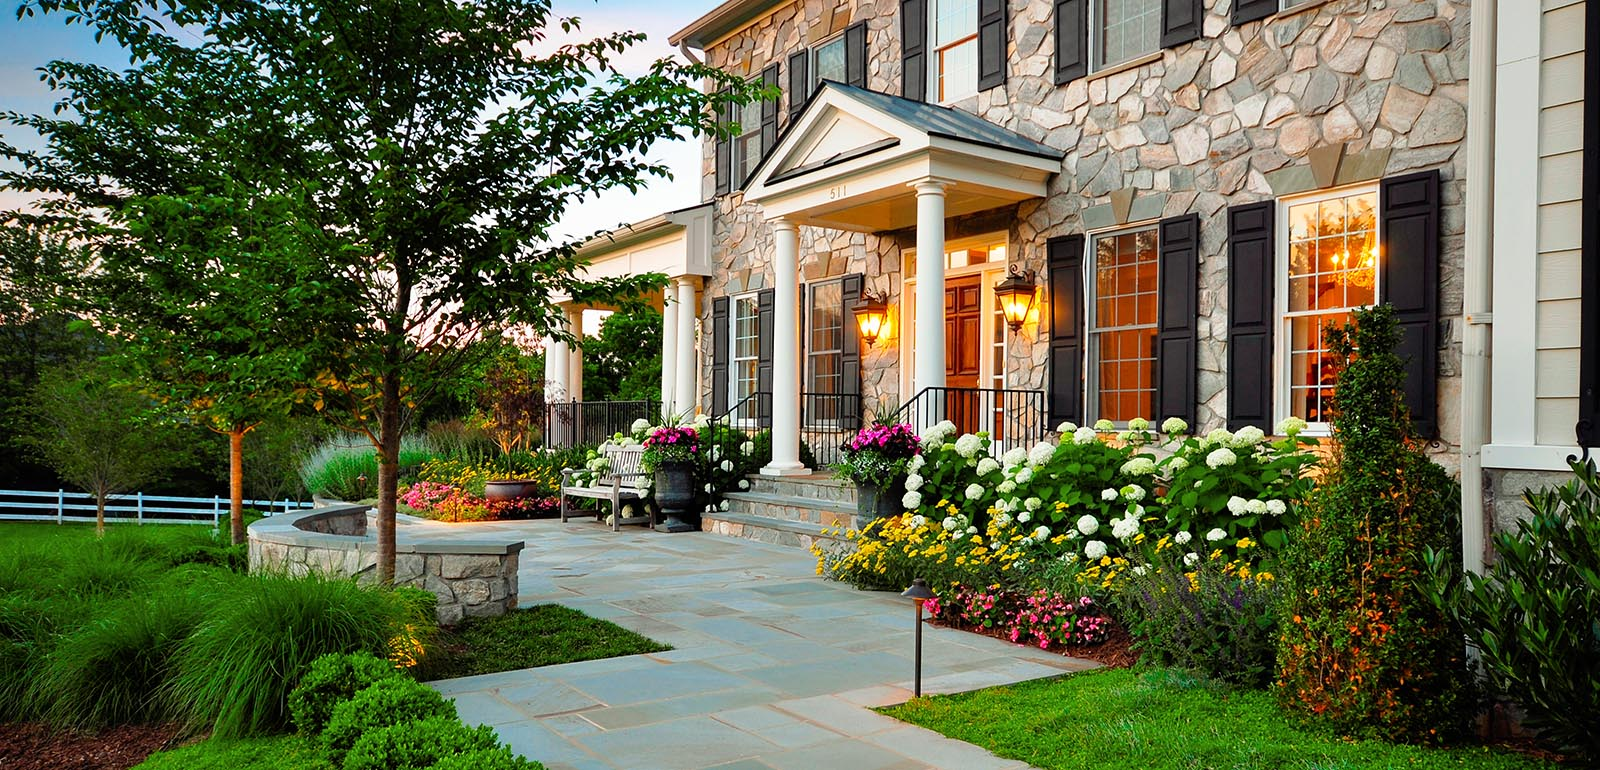 Genuine House Landscaping Designs Flower Forget Look Front Yard Landscaping Ideas Landscape Design Spruce Up Yard Front outdoor Modern Landscaping Design